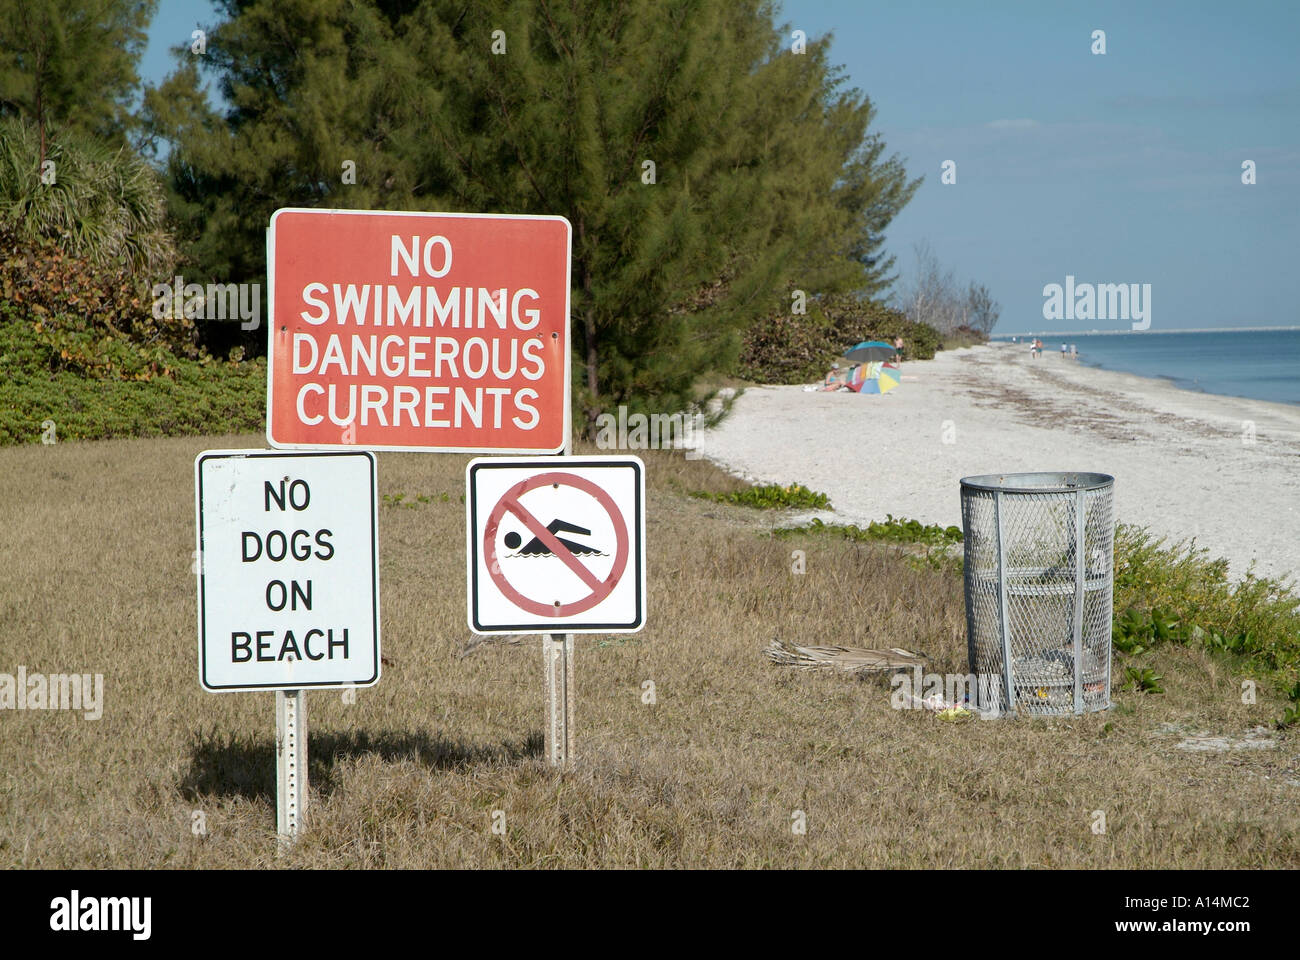 No swimming signs on beach regulate the actions of patrons to fort no swimming signs on beach regulate the actions of patrons to fort desoto county park at st petersburg florida nvjuhfo Images